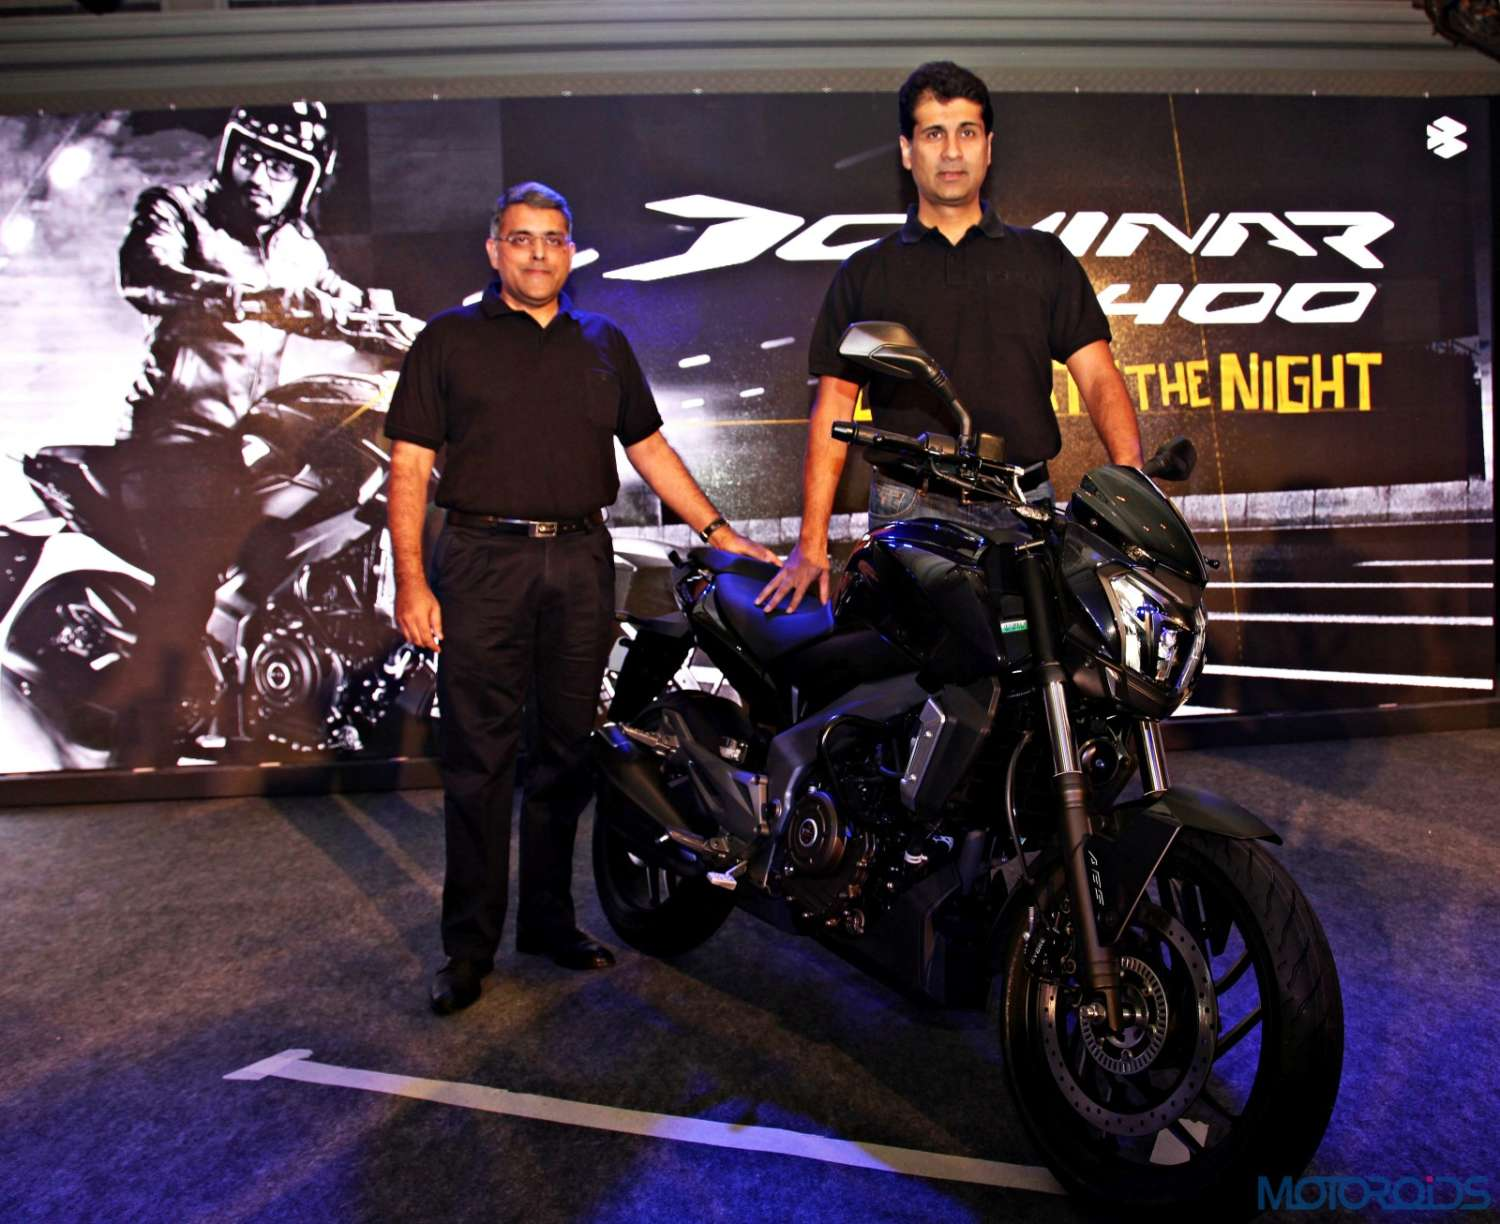 bajaj-Dominar-India-Launch-Images-20